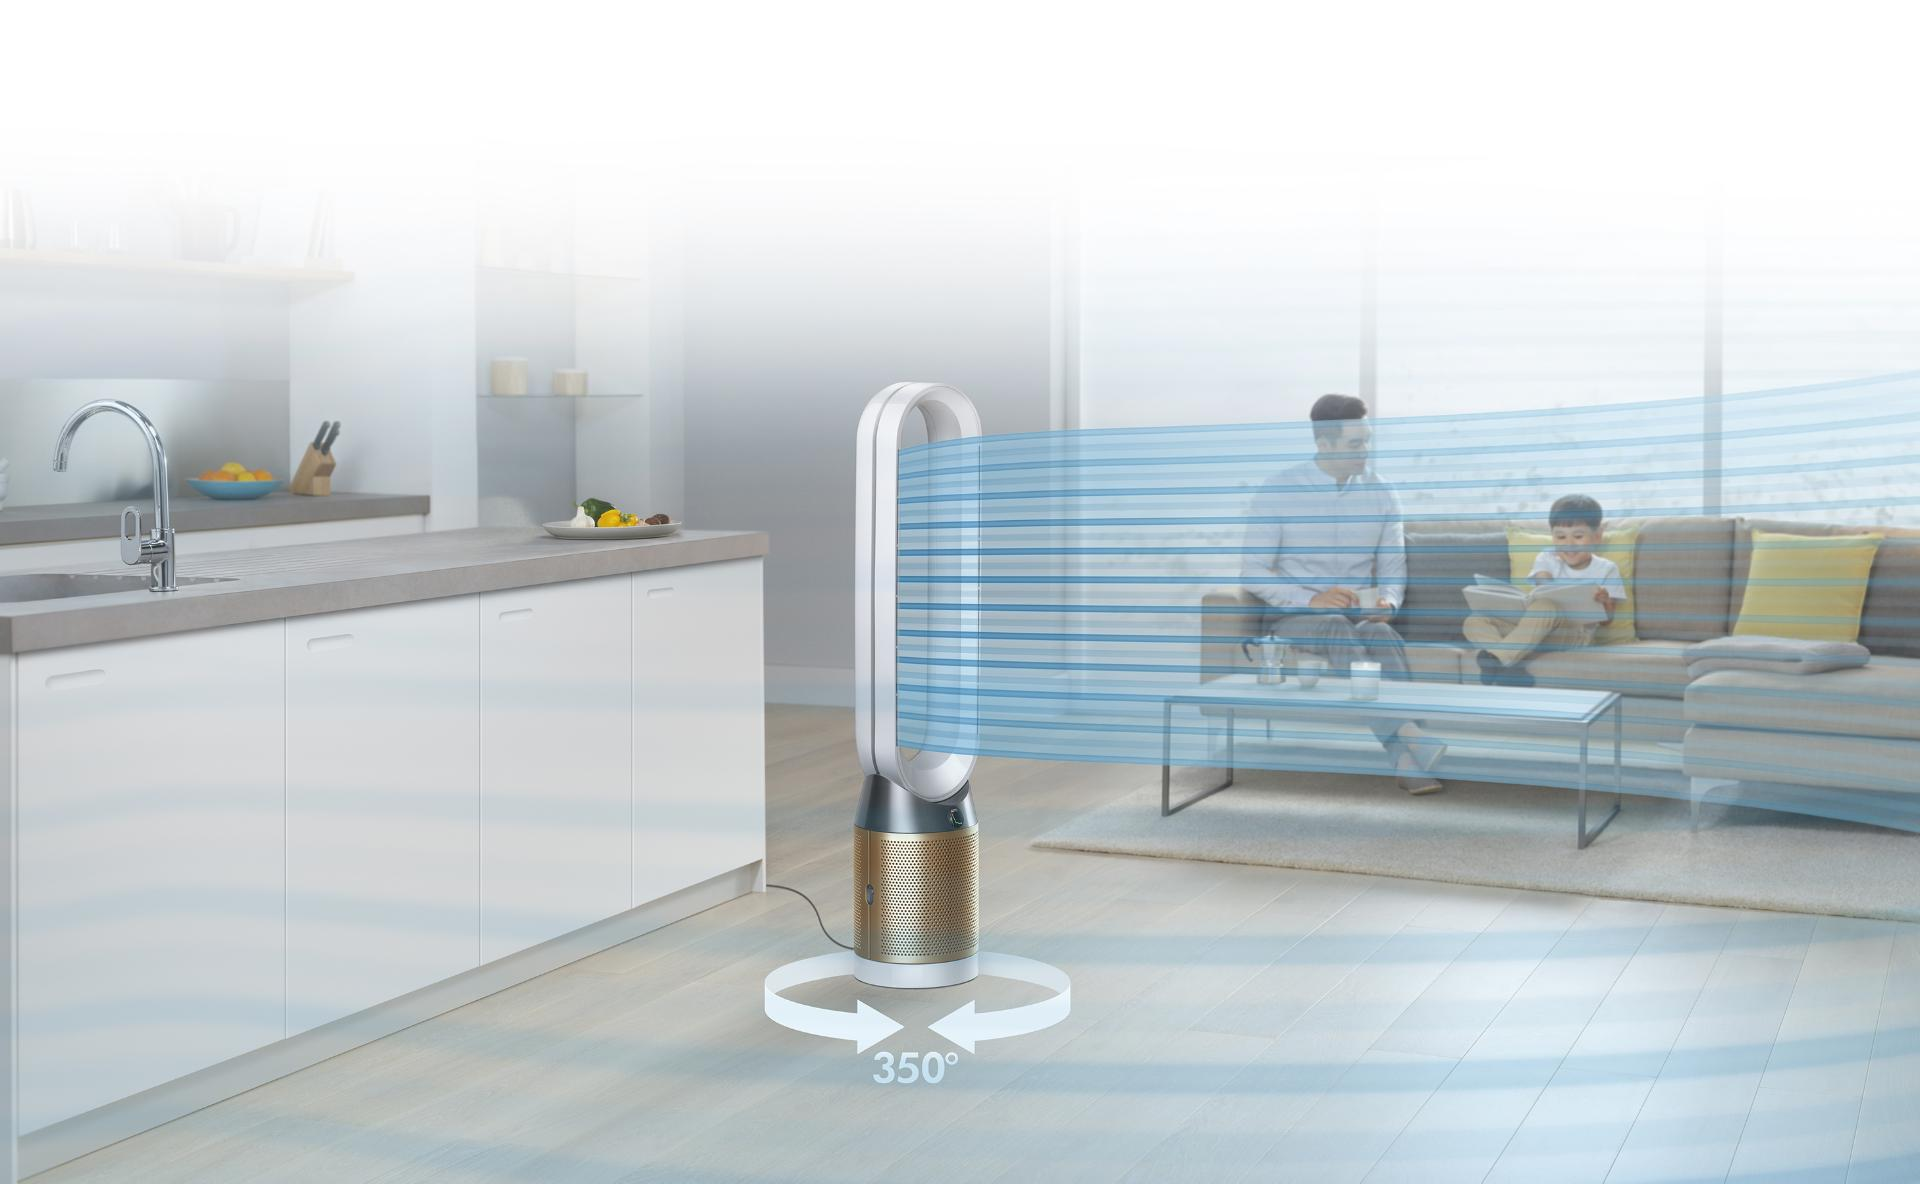 The Dyson Pure Cool Cryptomic projecting heated and cooling purified air throughout a large open lounge and kitchen